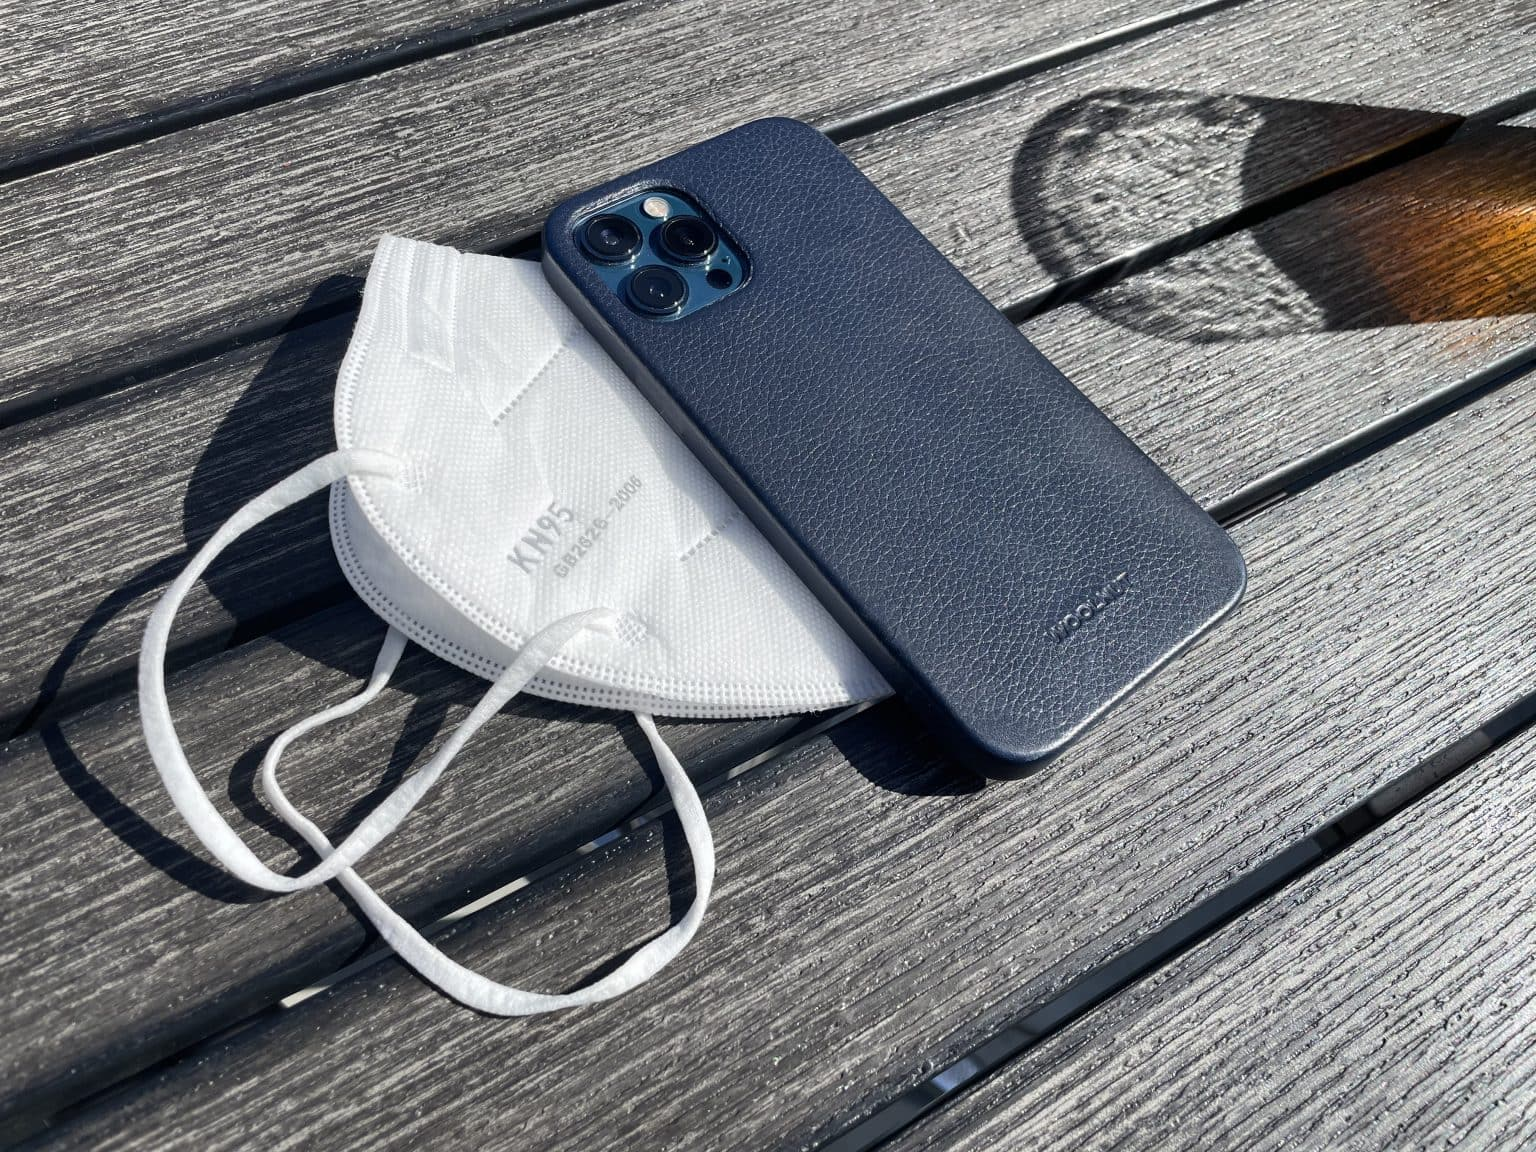 Woolnut iPhone 12 Pro Max leather case review: Blue to the max!